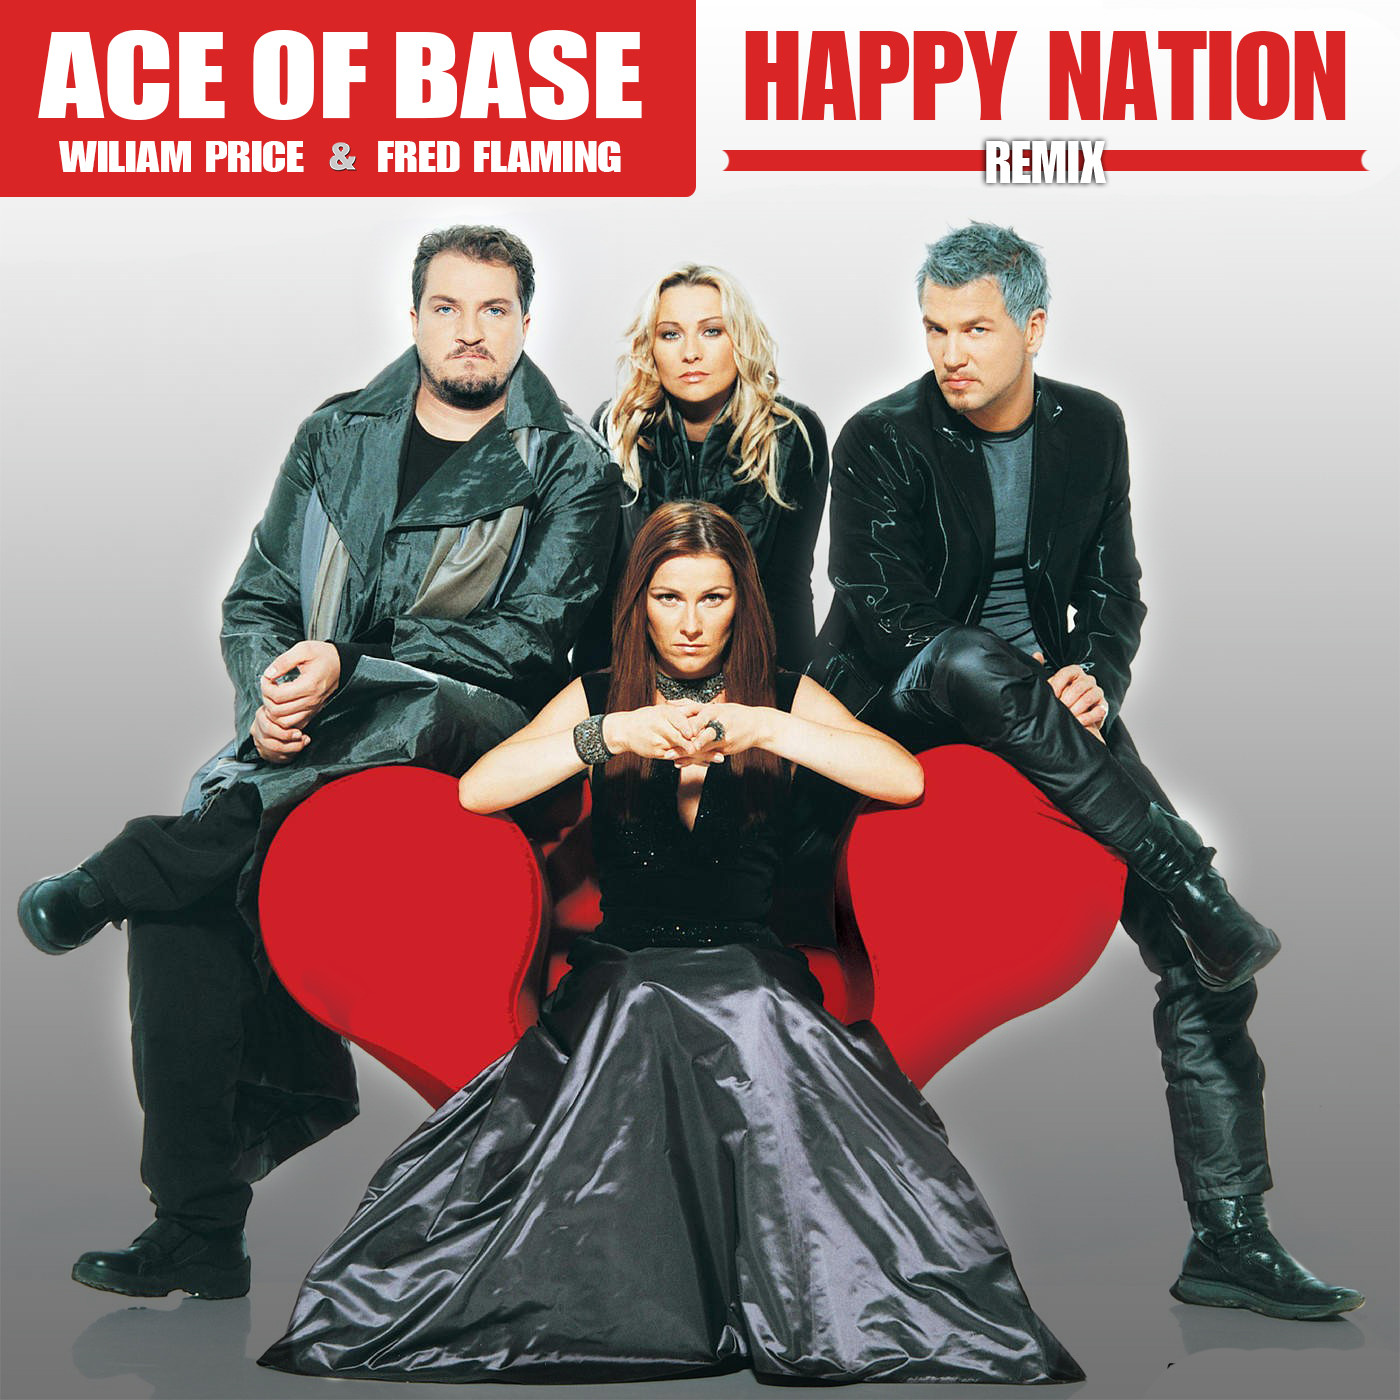 Ace of base happy nation (cd, album) at discogs.